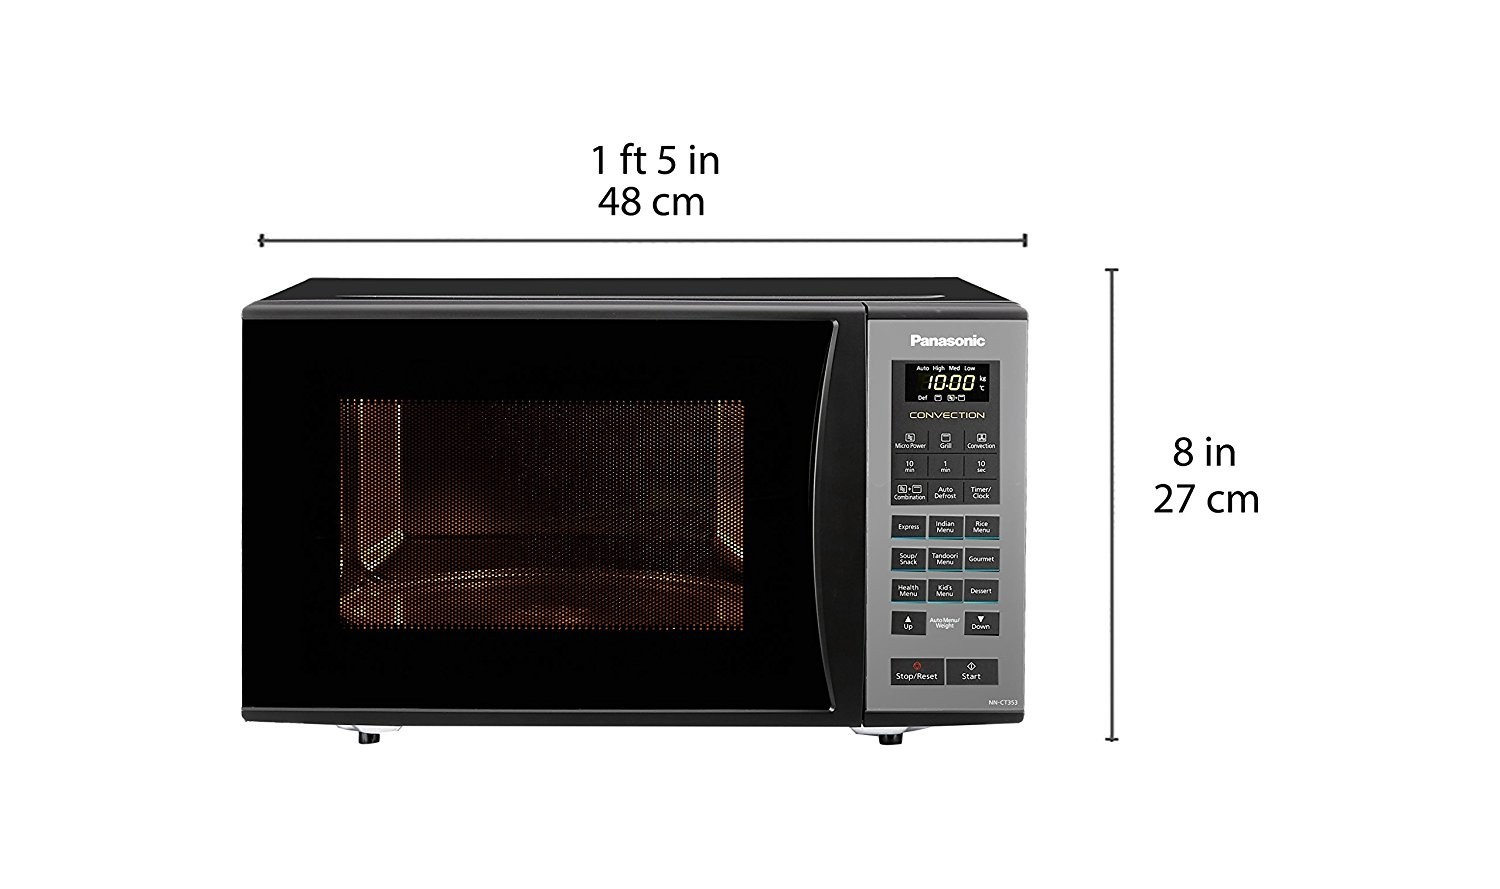 Panasonic Stylish Microwave